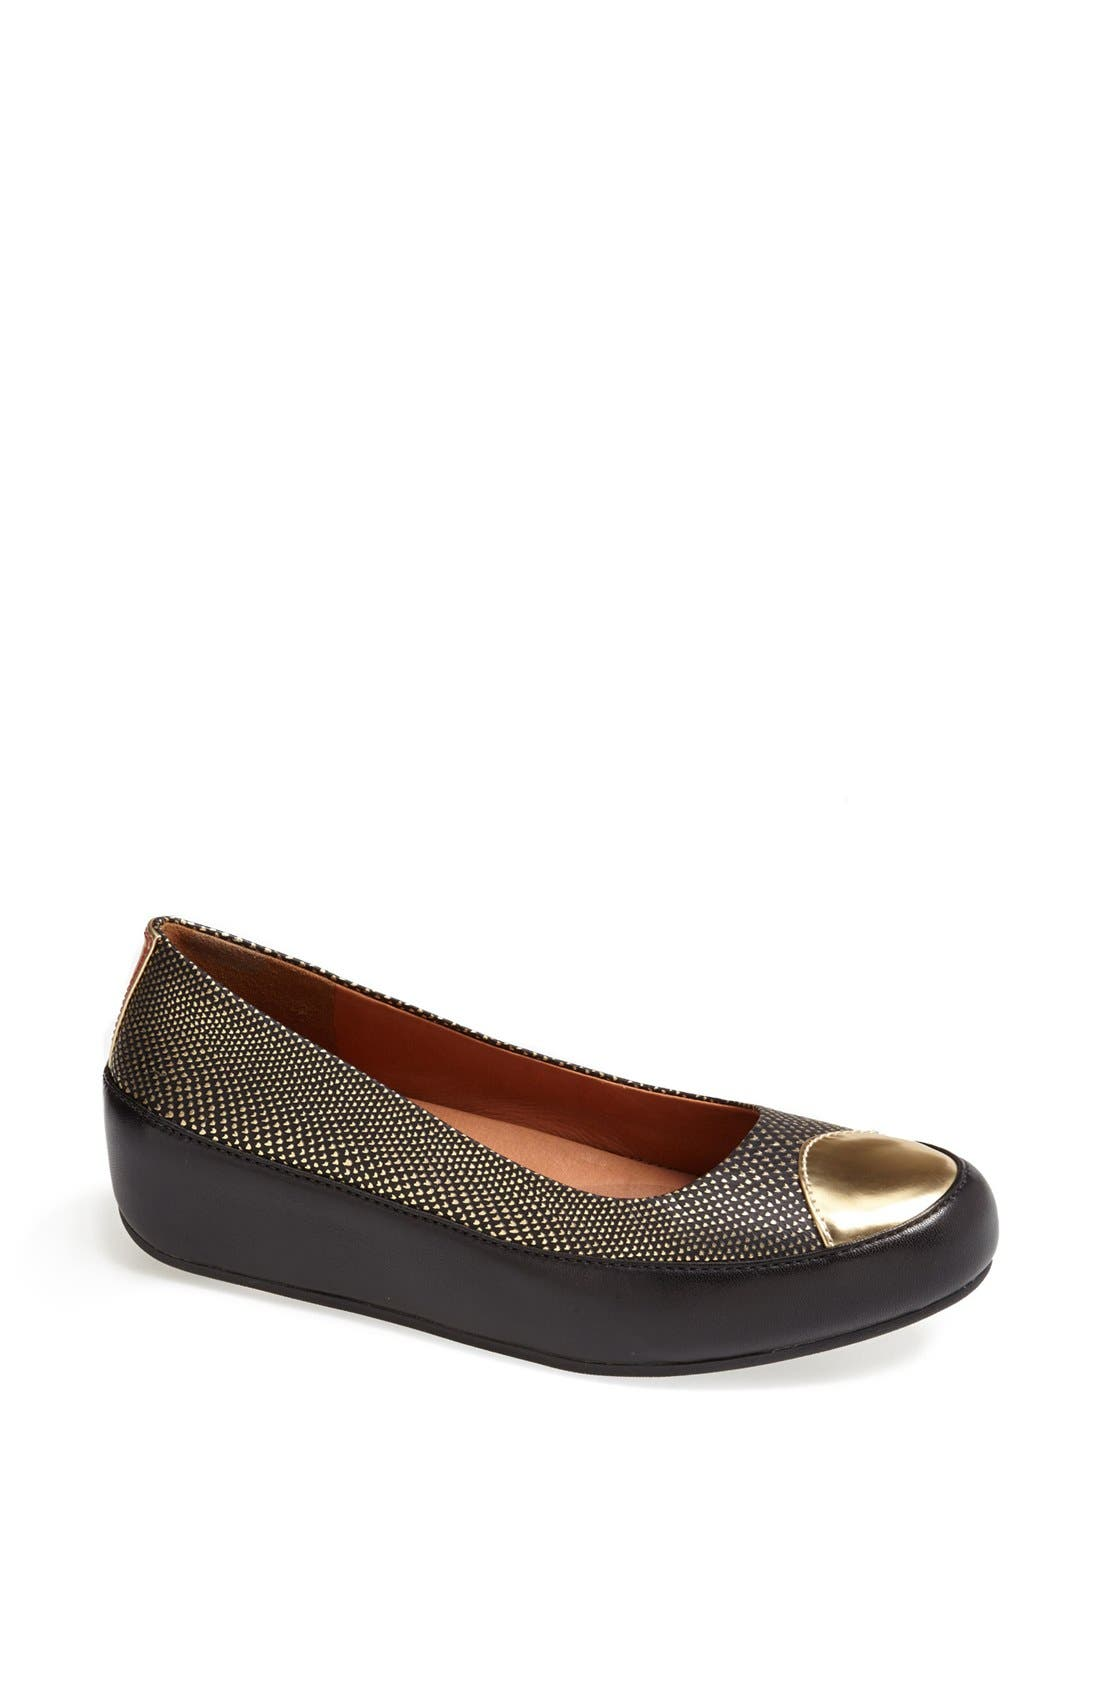 Main Image - FitFlop 'Dué™ Oro' Leather Flat